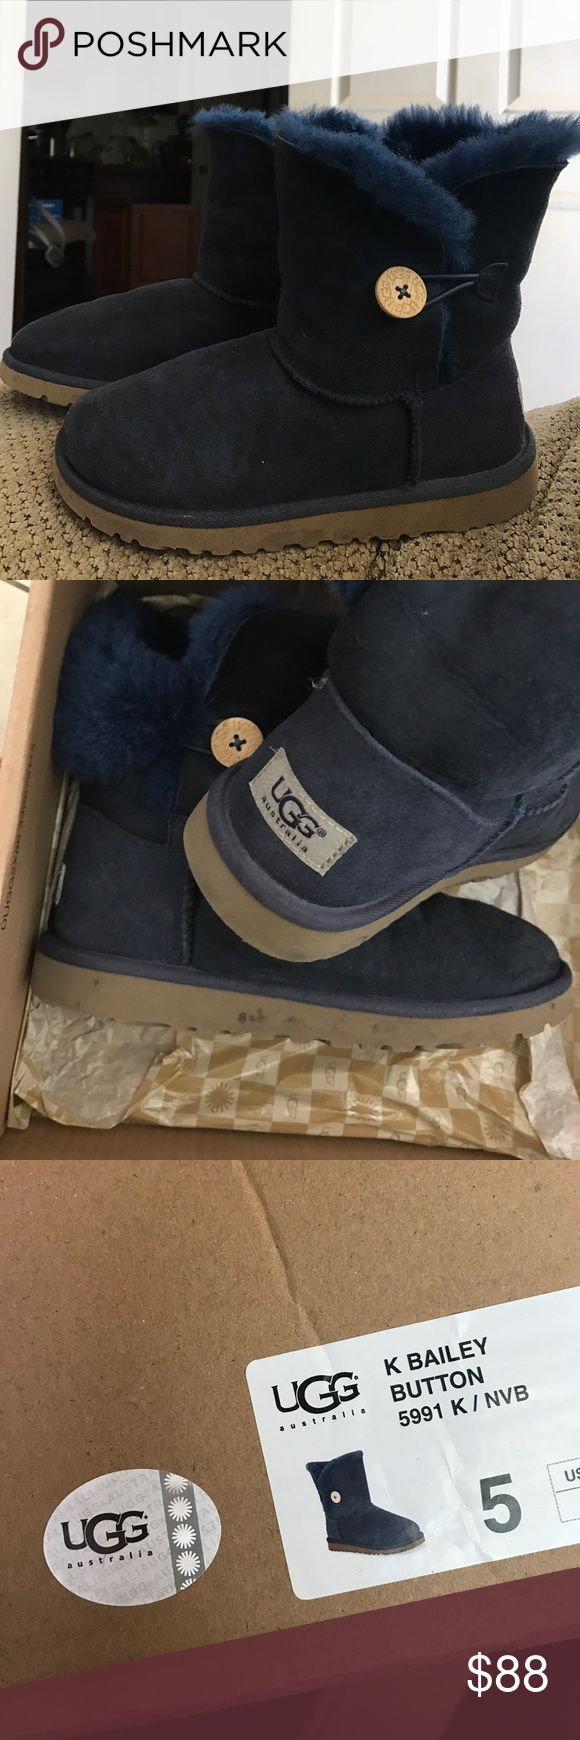 Navy Blue Ugg Boots Navy blue Ugg boots with button, used UGG Shoes Winter & Rain Boots